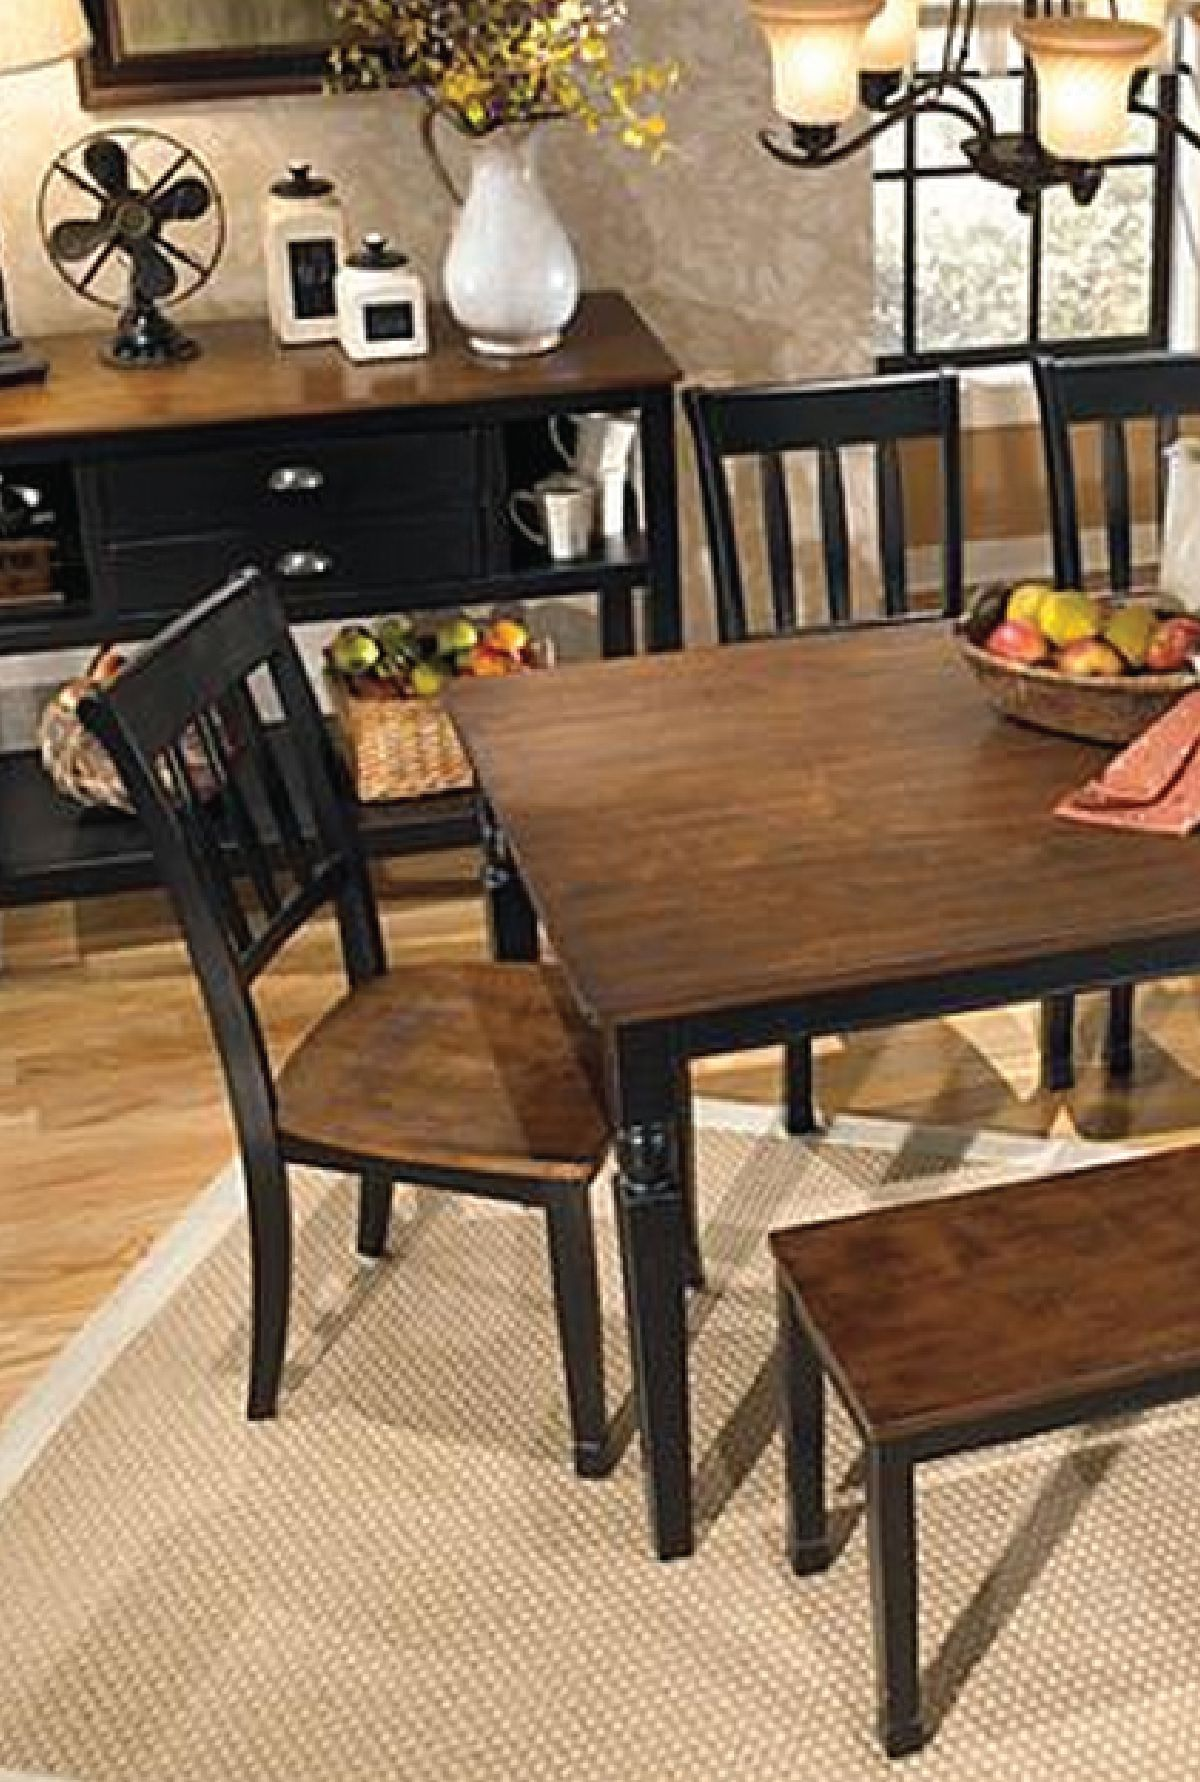 this farmhouse-style table is an elegant and beautiful addition to